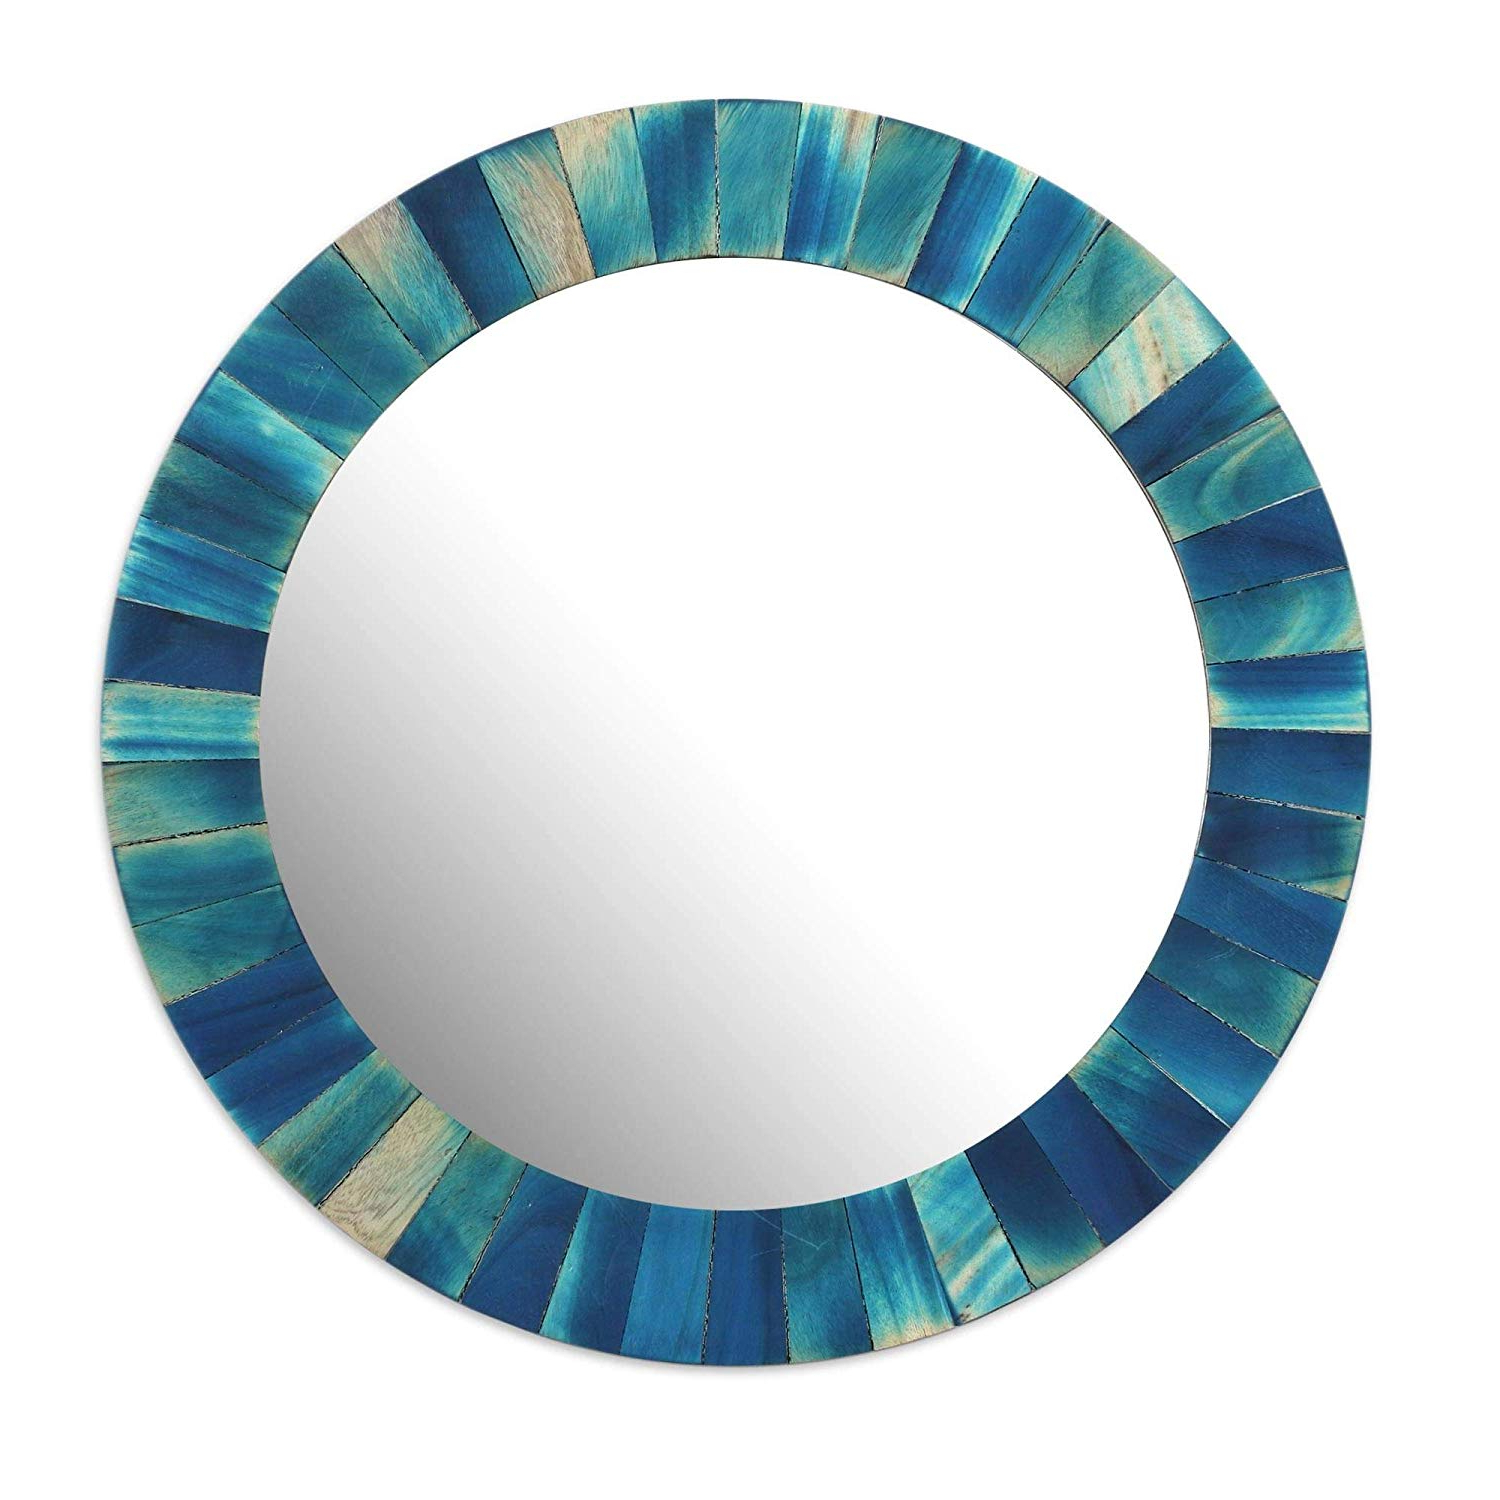 2019 Amazon: Novica 300572 Blue Radiance Wood Wall Mirror: Home & Kitchen Within Blue Wall Mirrors (View 13 of 20)